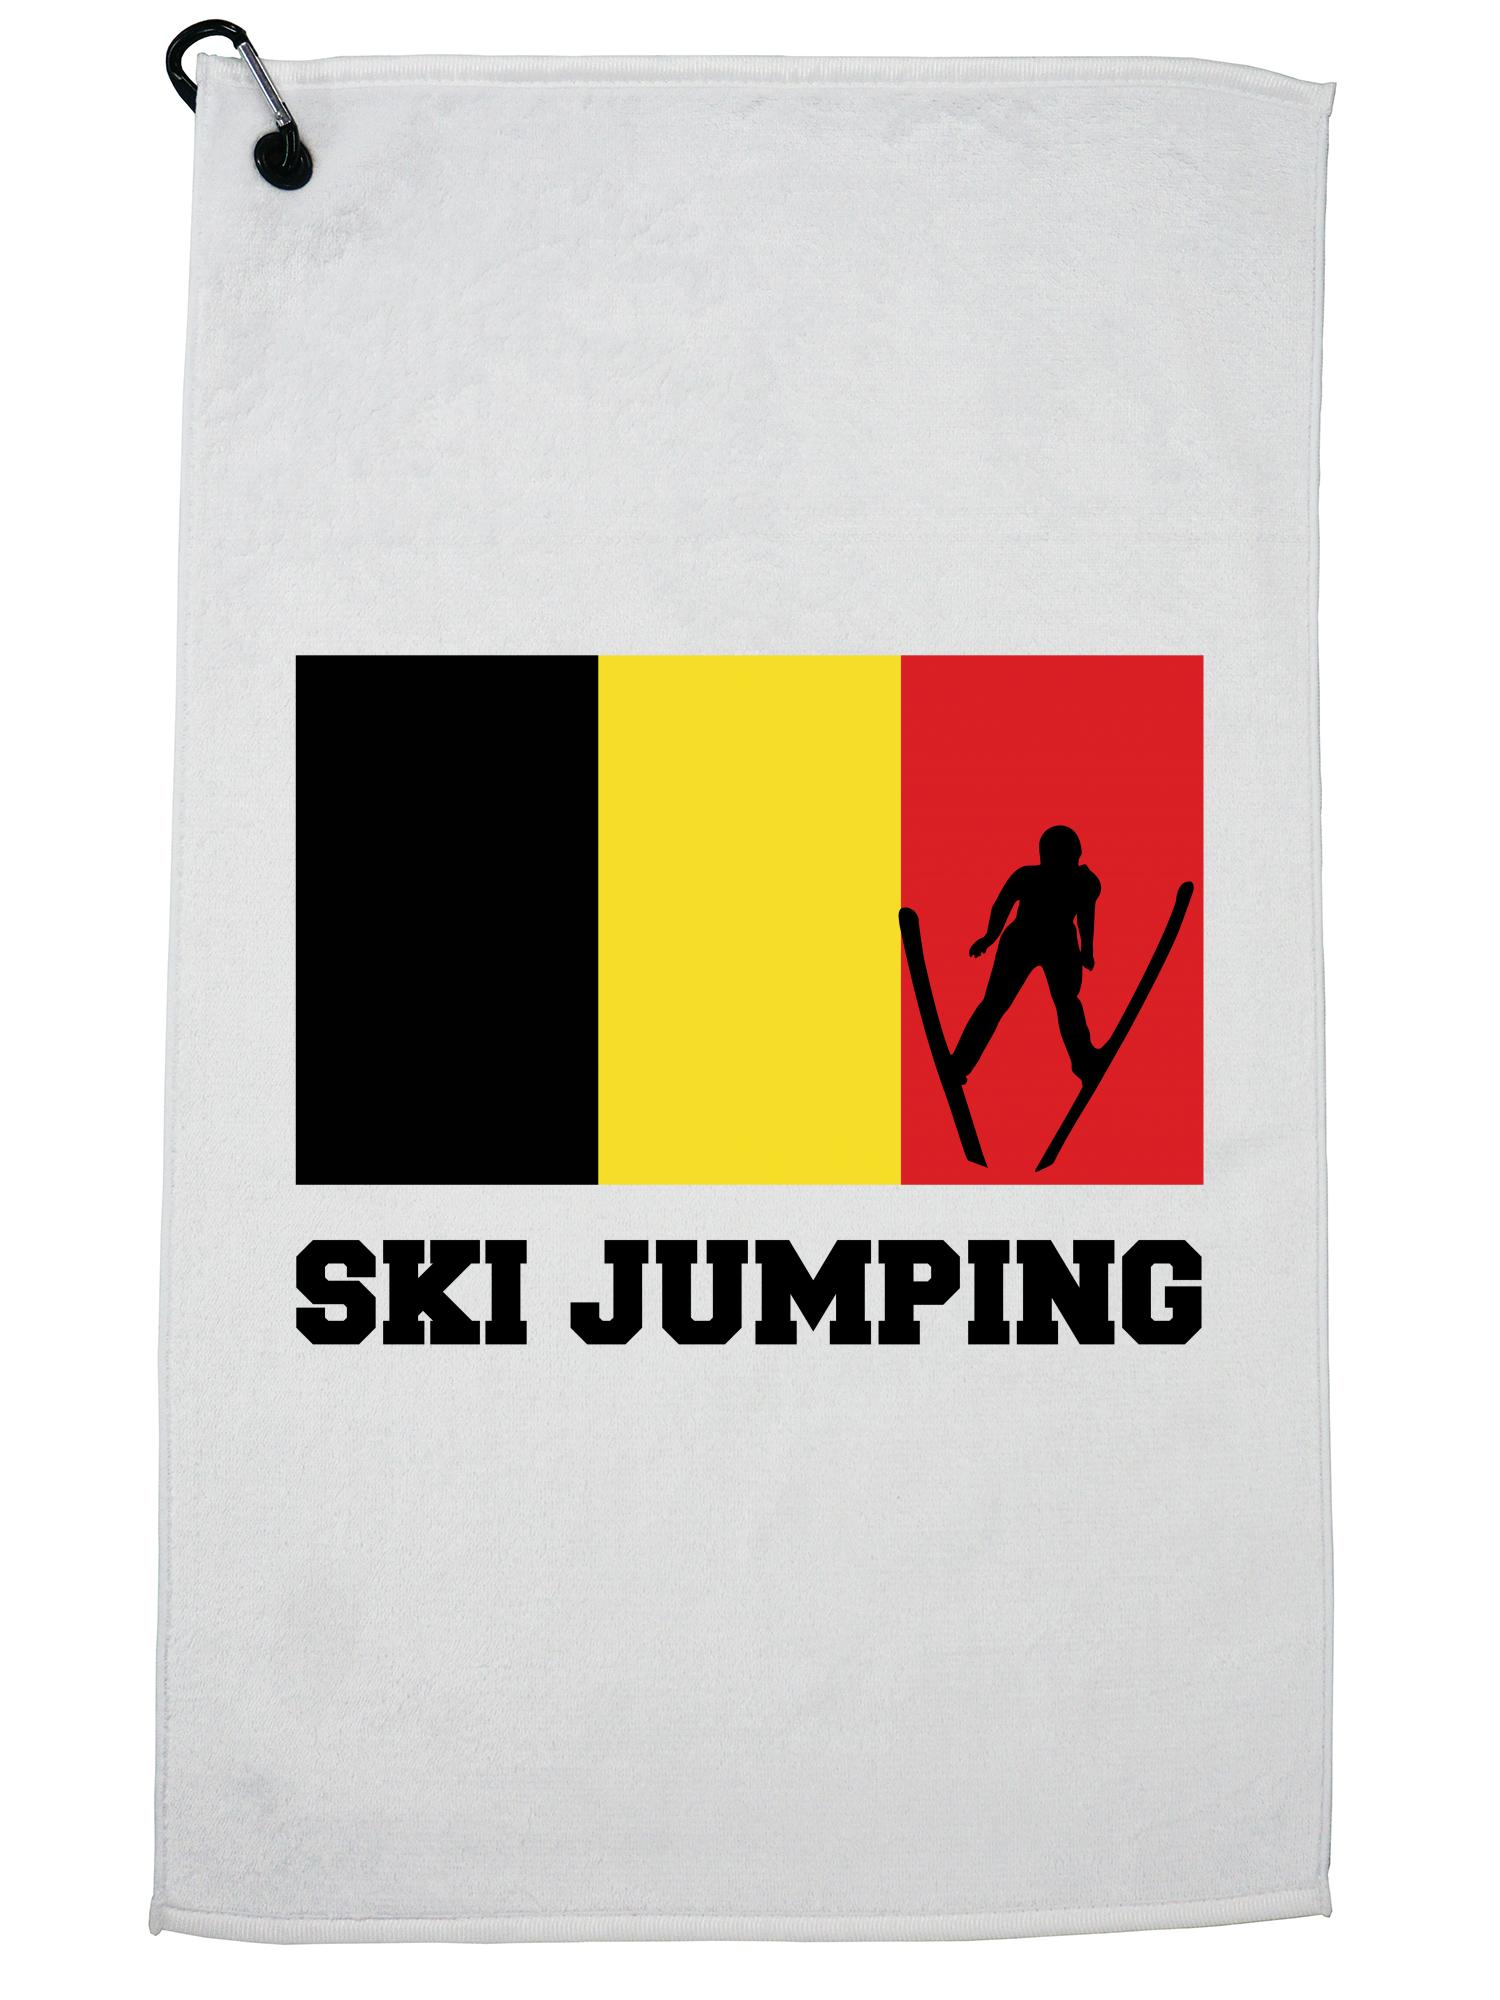 Belgium Olympic Ski Jumping Flag Silhouette Golf Towel with Carabiner Clip by Hollywood Thread